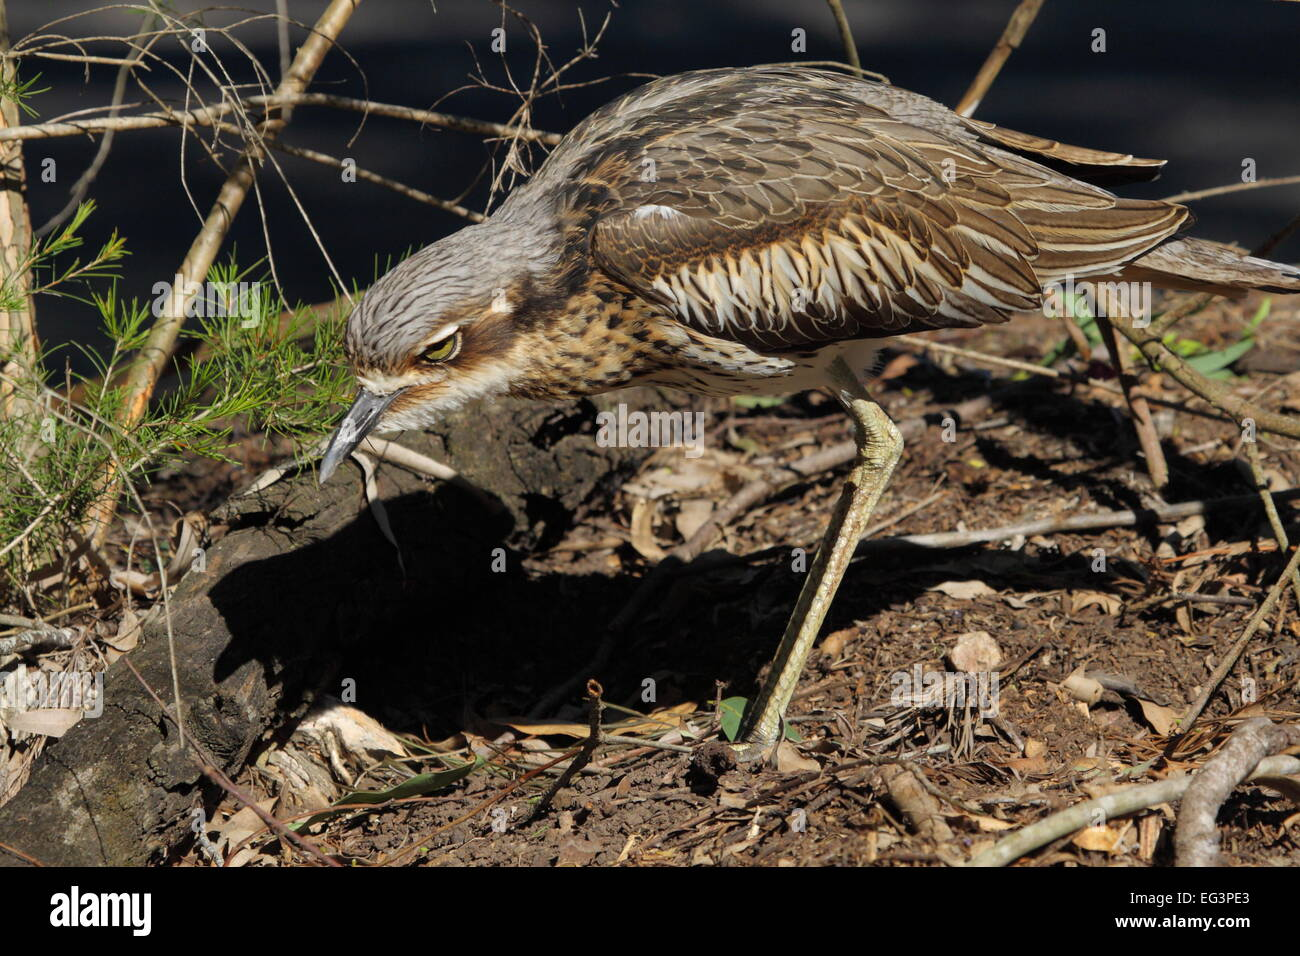 A Bush Stone-curlew (Burhinus grallarius), also called bush thick-knee, is camouflaged among shrubs and leaf litter - Stock Image